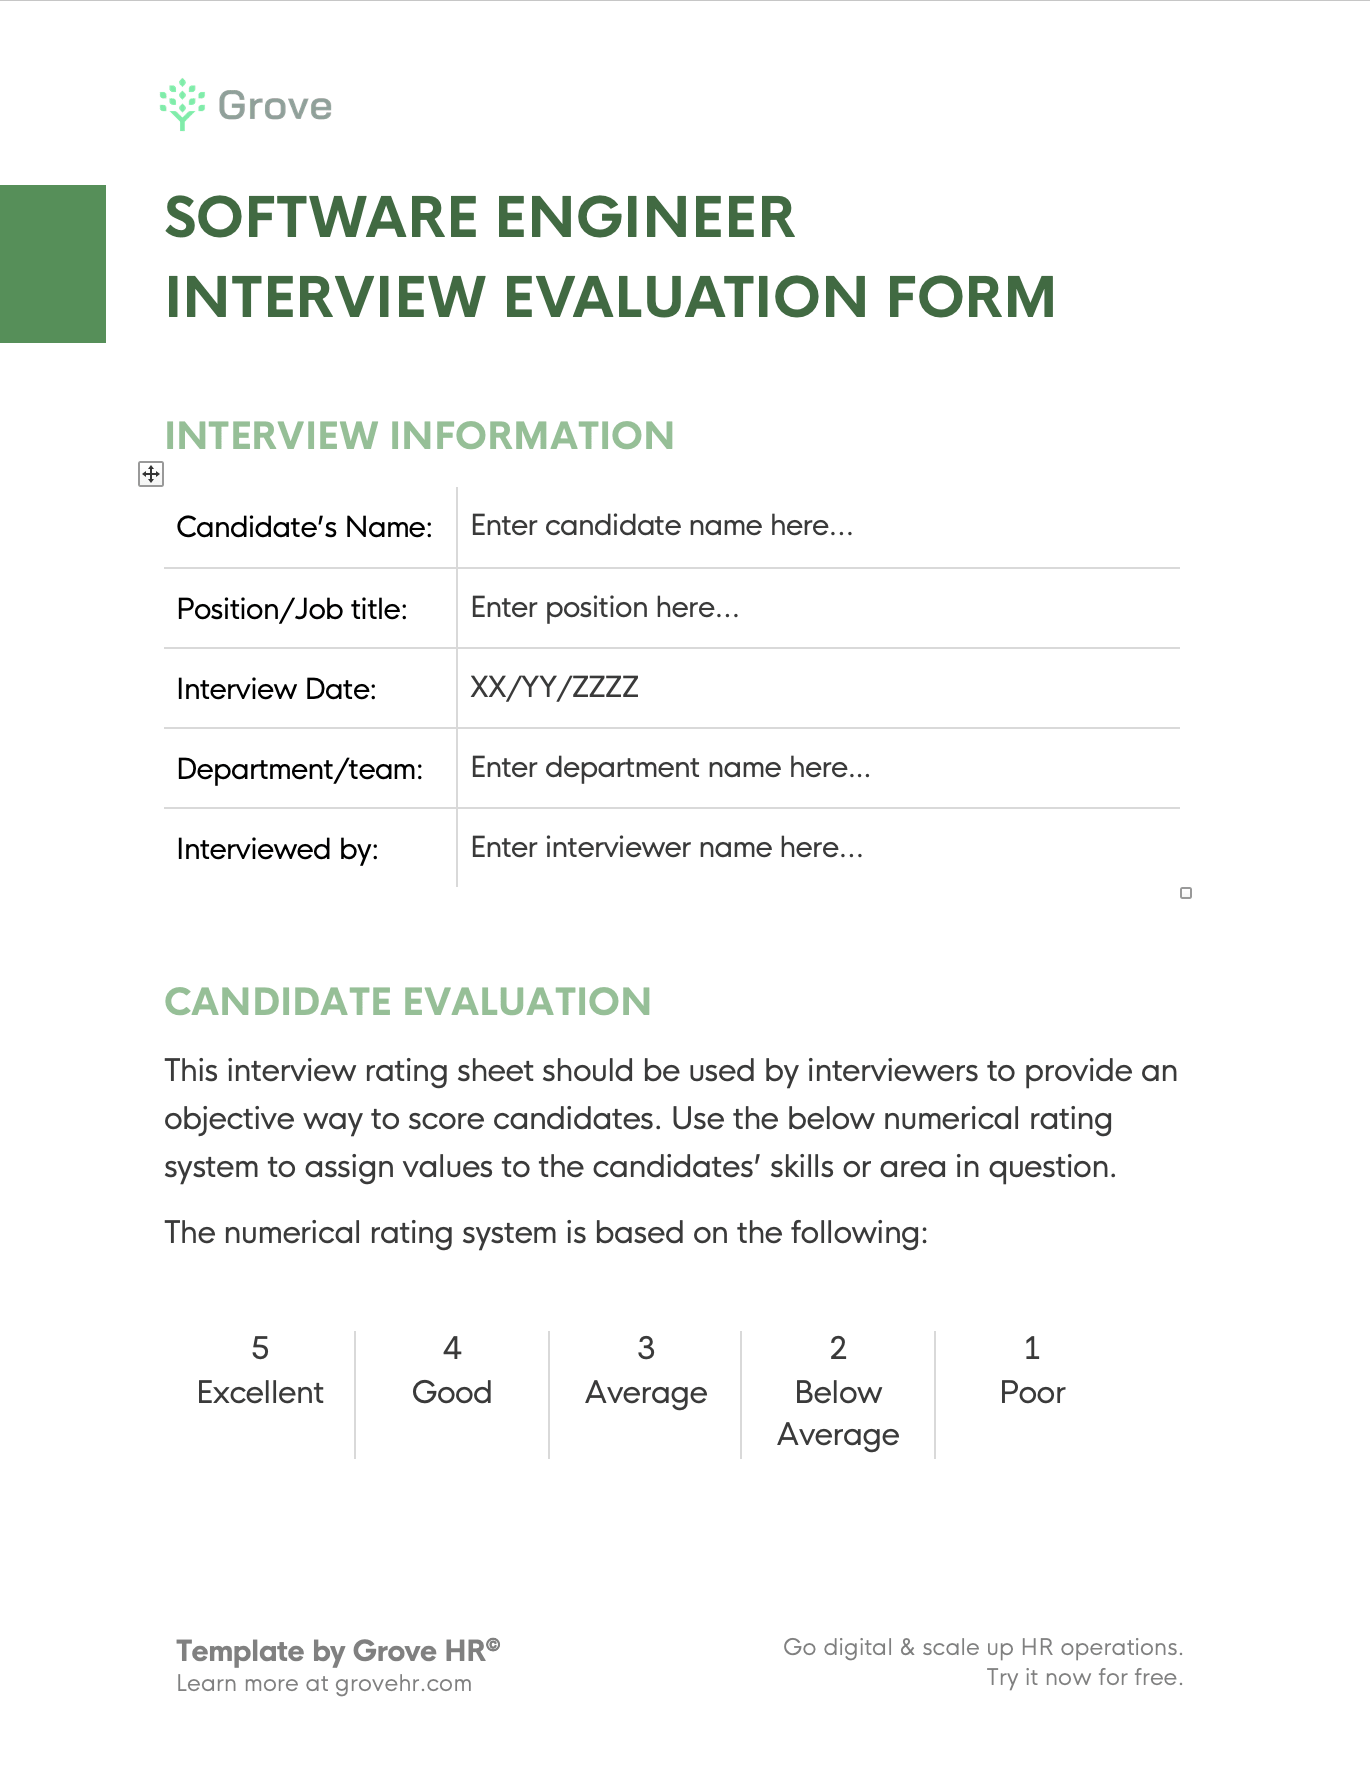 Grove HR - Interview evaluation form for SE s2